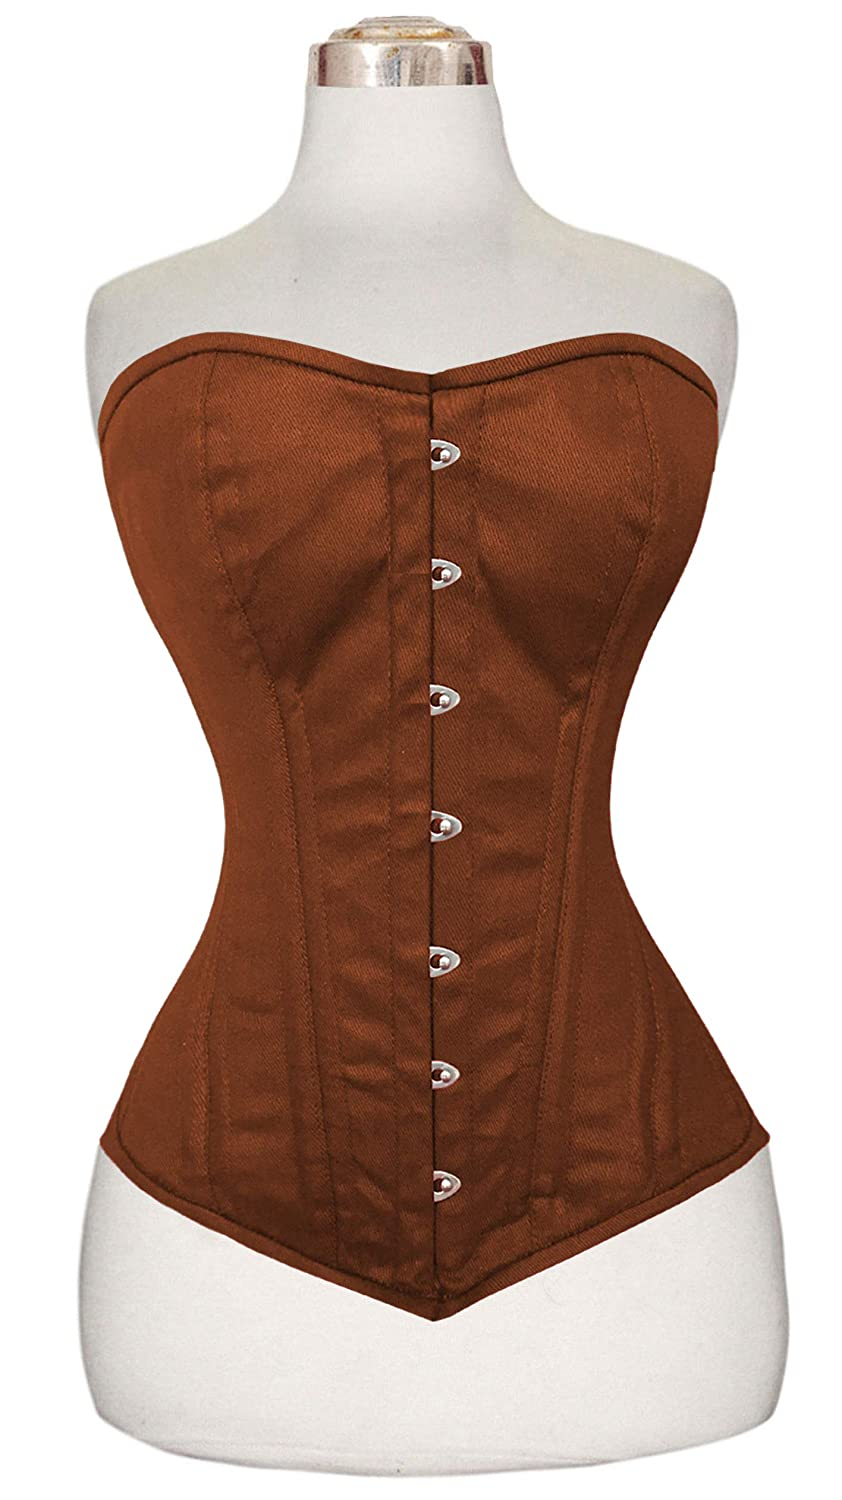 3840cc1fafb DF Styles Heavy Duty Double Steel Boned Over Bust Waist Trainer Cotton  Corset 8555  Amazon.co.uk  Clothing